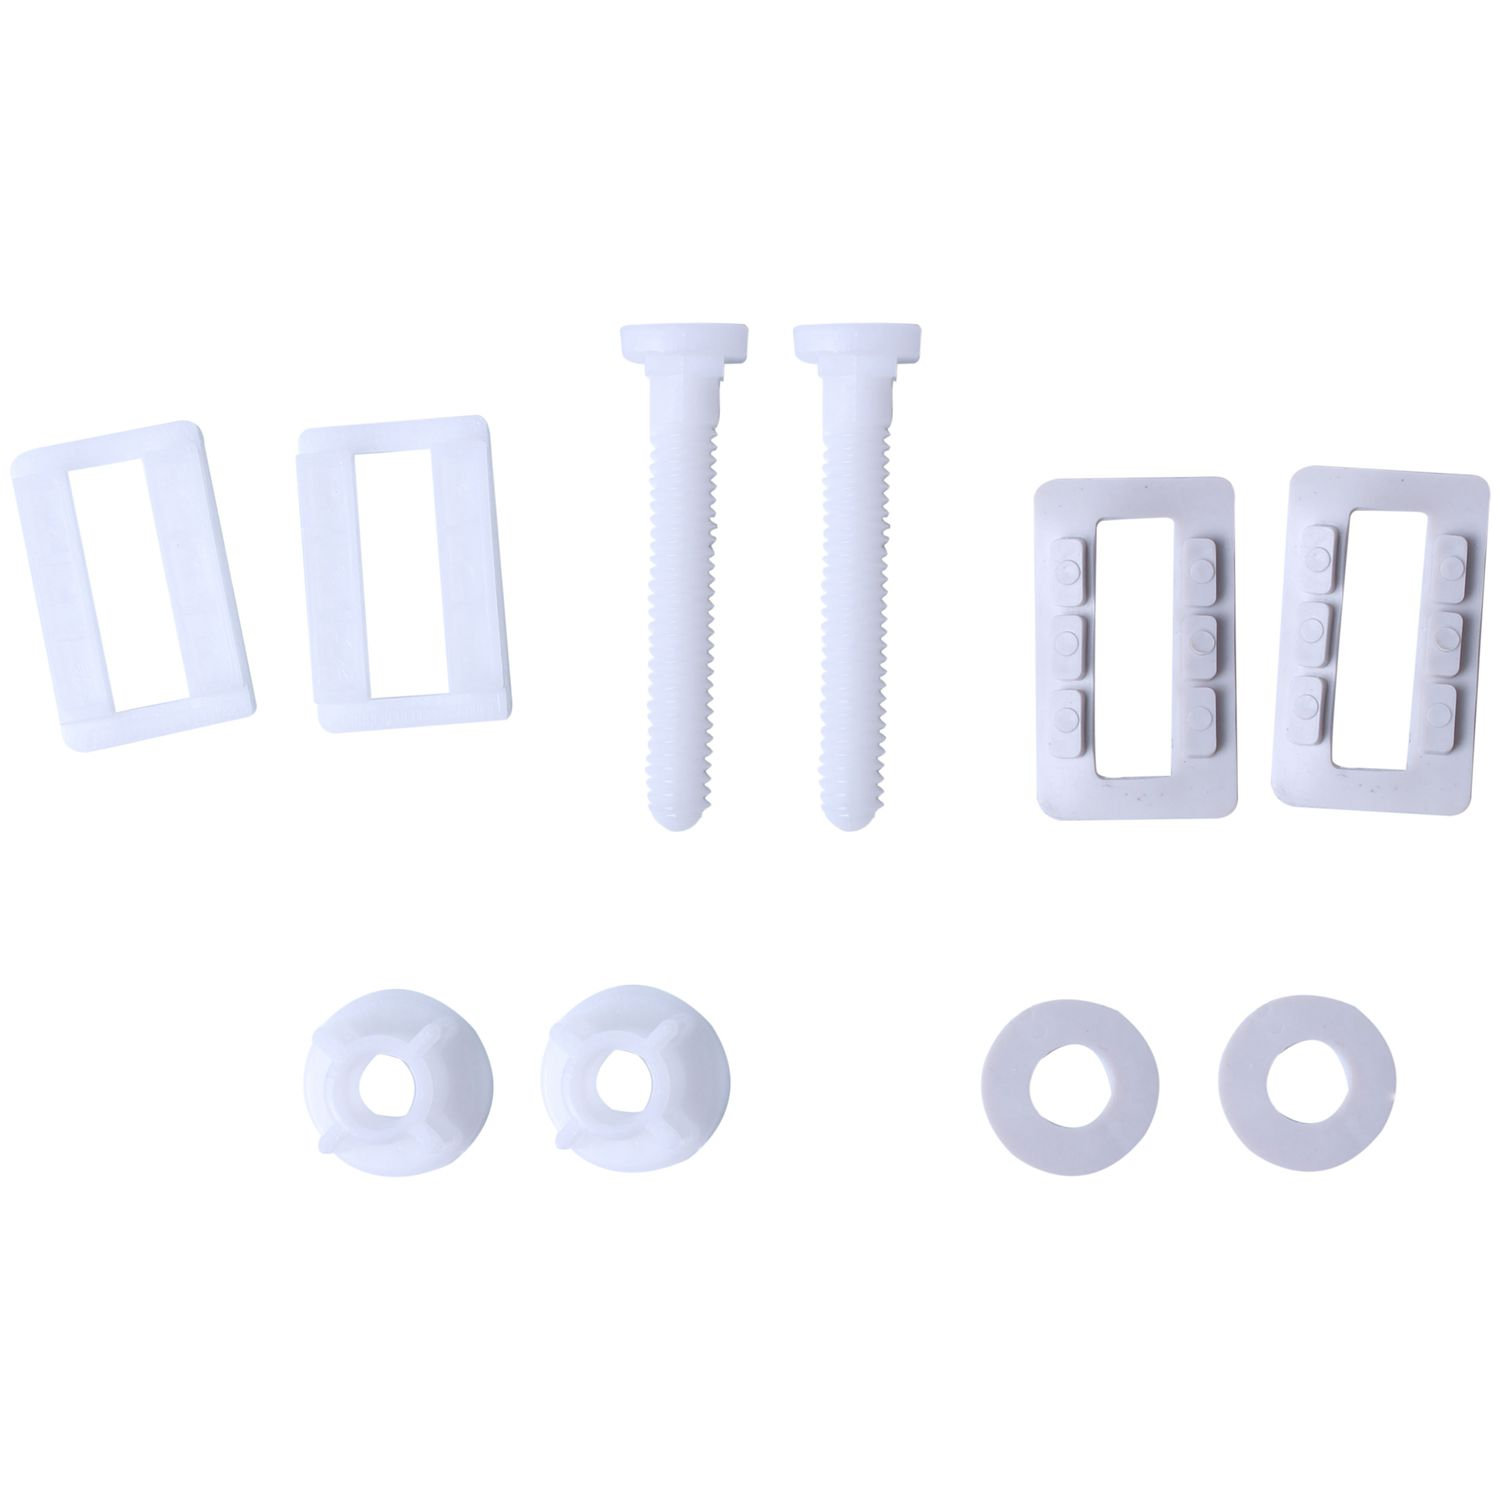 Enjoyable Us 1 43 19 Off Toilet Seat Hinge Bolts Replacement Bolt Screws Fixing Fitting Kit Repair Tools In Bath Hardware Sets From Home Improvement On Gamerscity Chair Design For Home Gamerscityorg